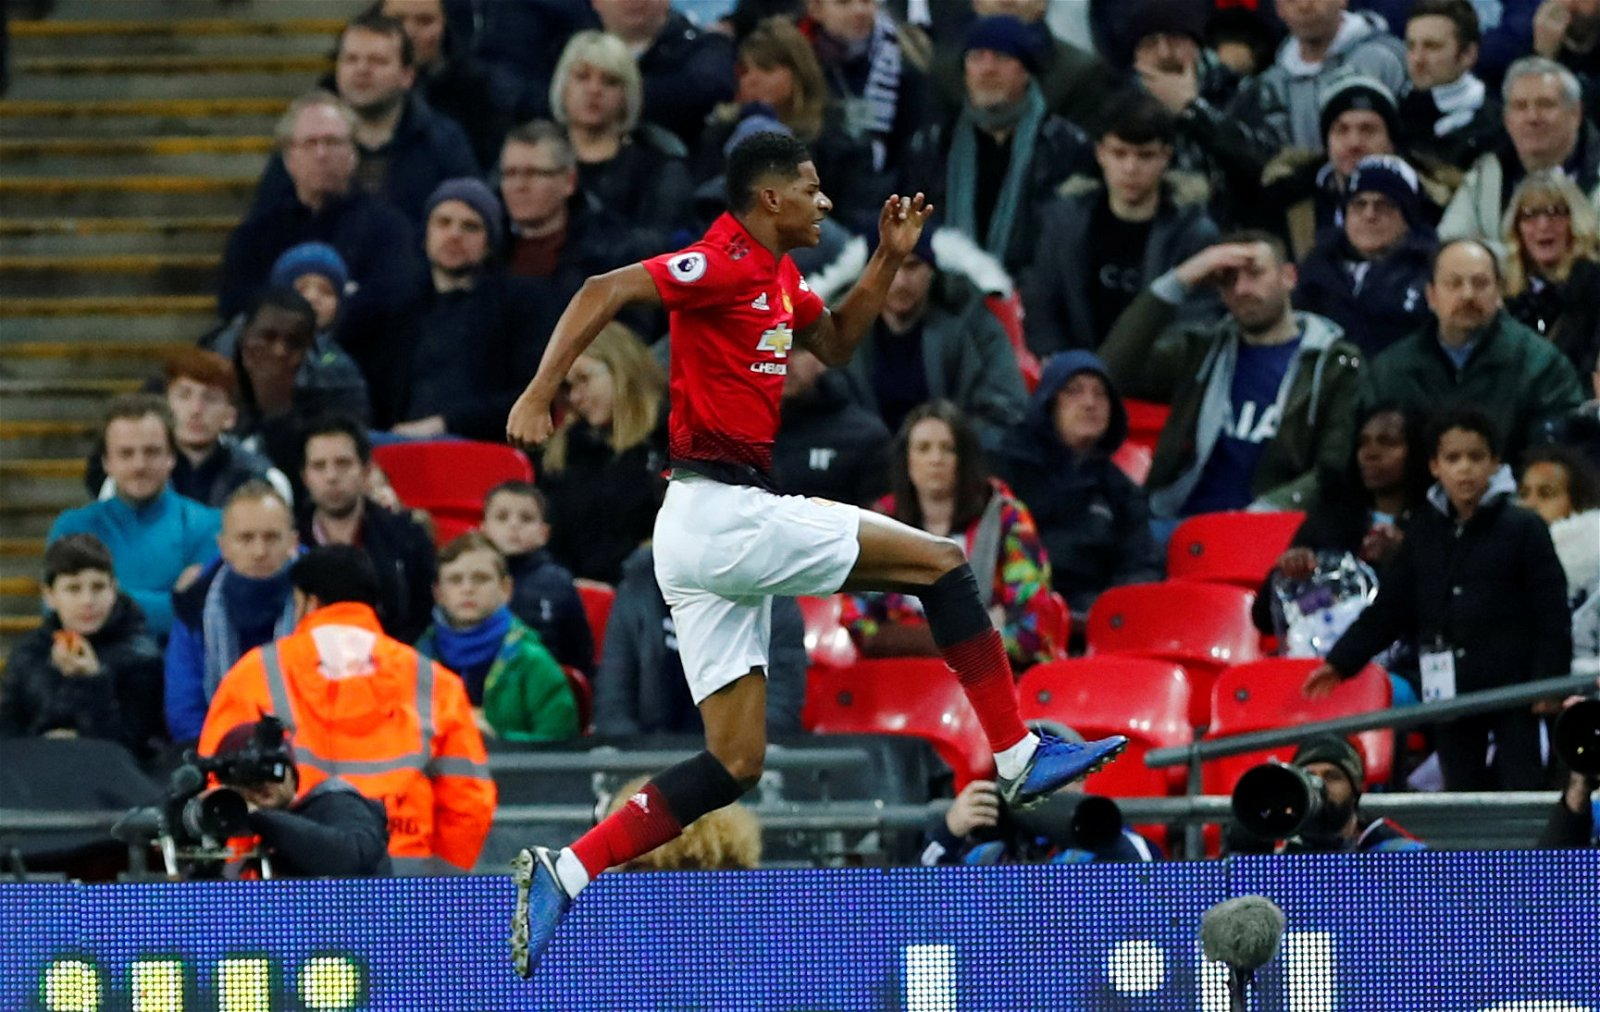 Marcus Rashford celebrates scoring against Tottenham - New role for Jose favourite, Title charge: Potential aftermath if Man Utd secure star's future